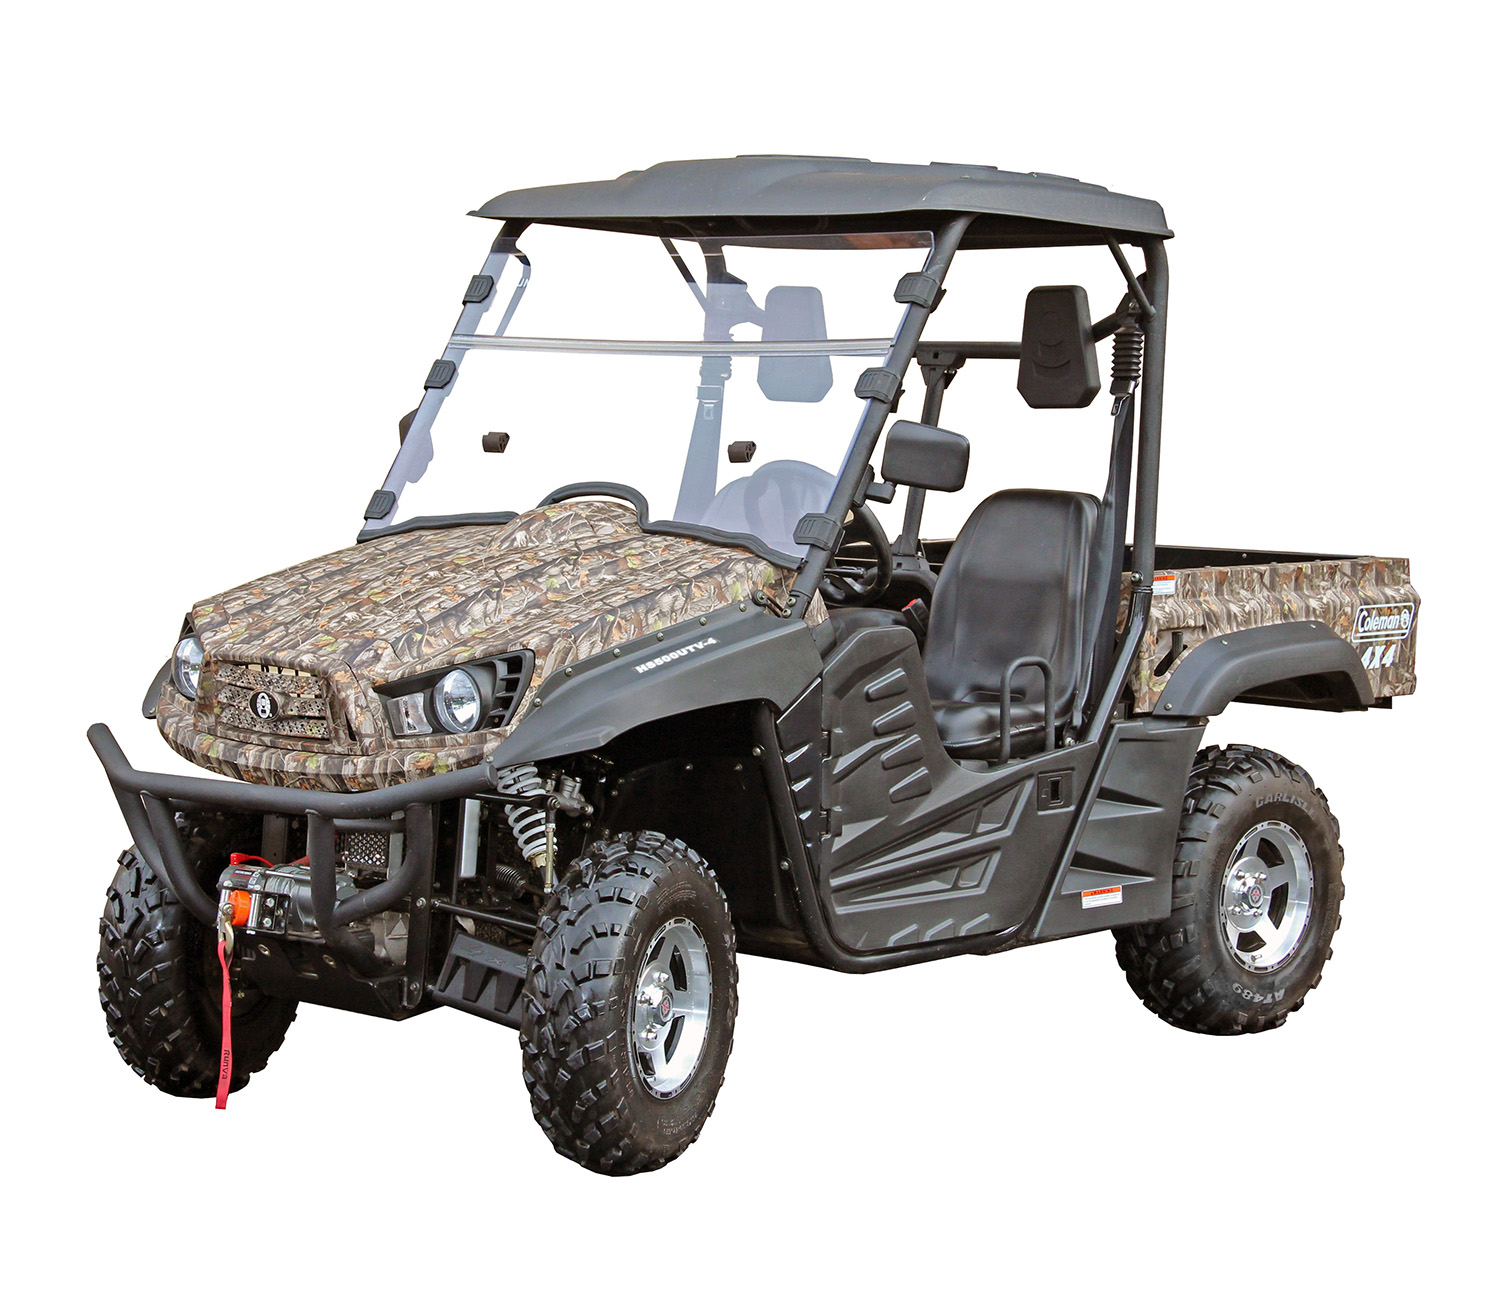 The Coleman Outfitter 500 is the perfect UTV for the common person. This ride is capable of handling just about anything you can think of. Winch Included.